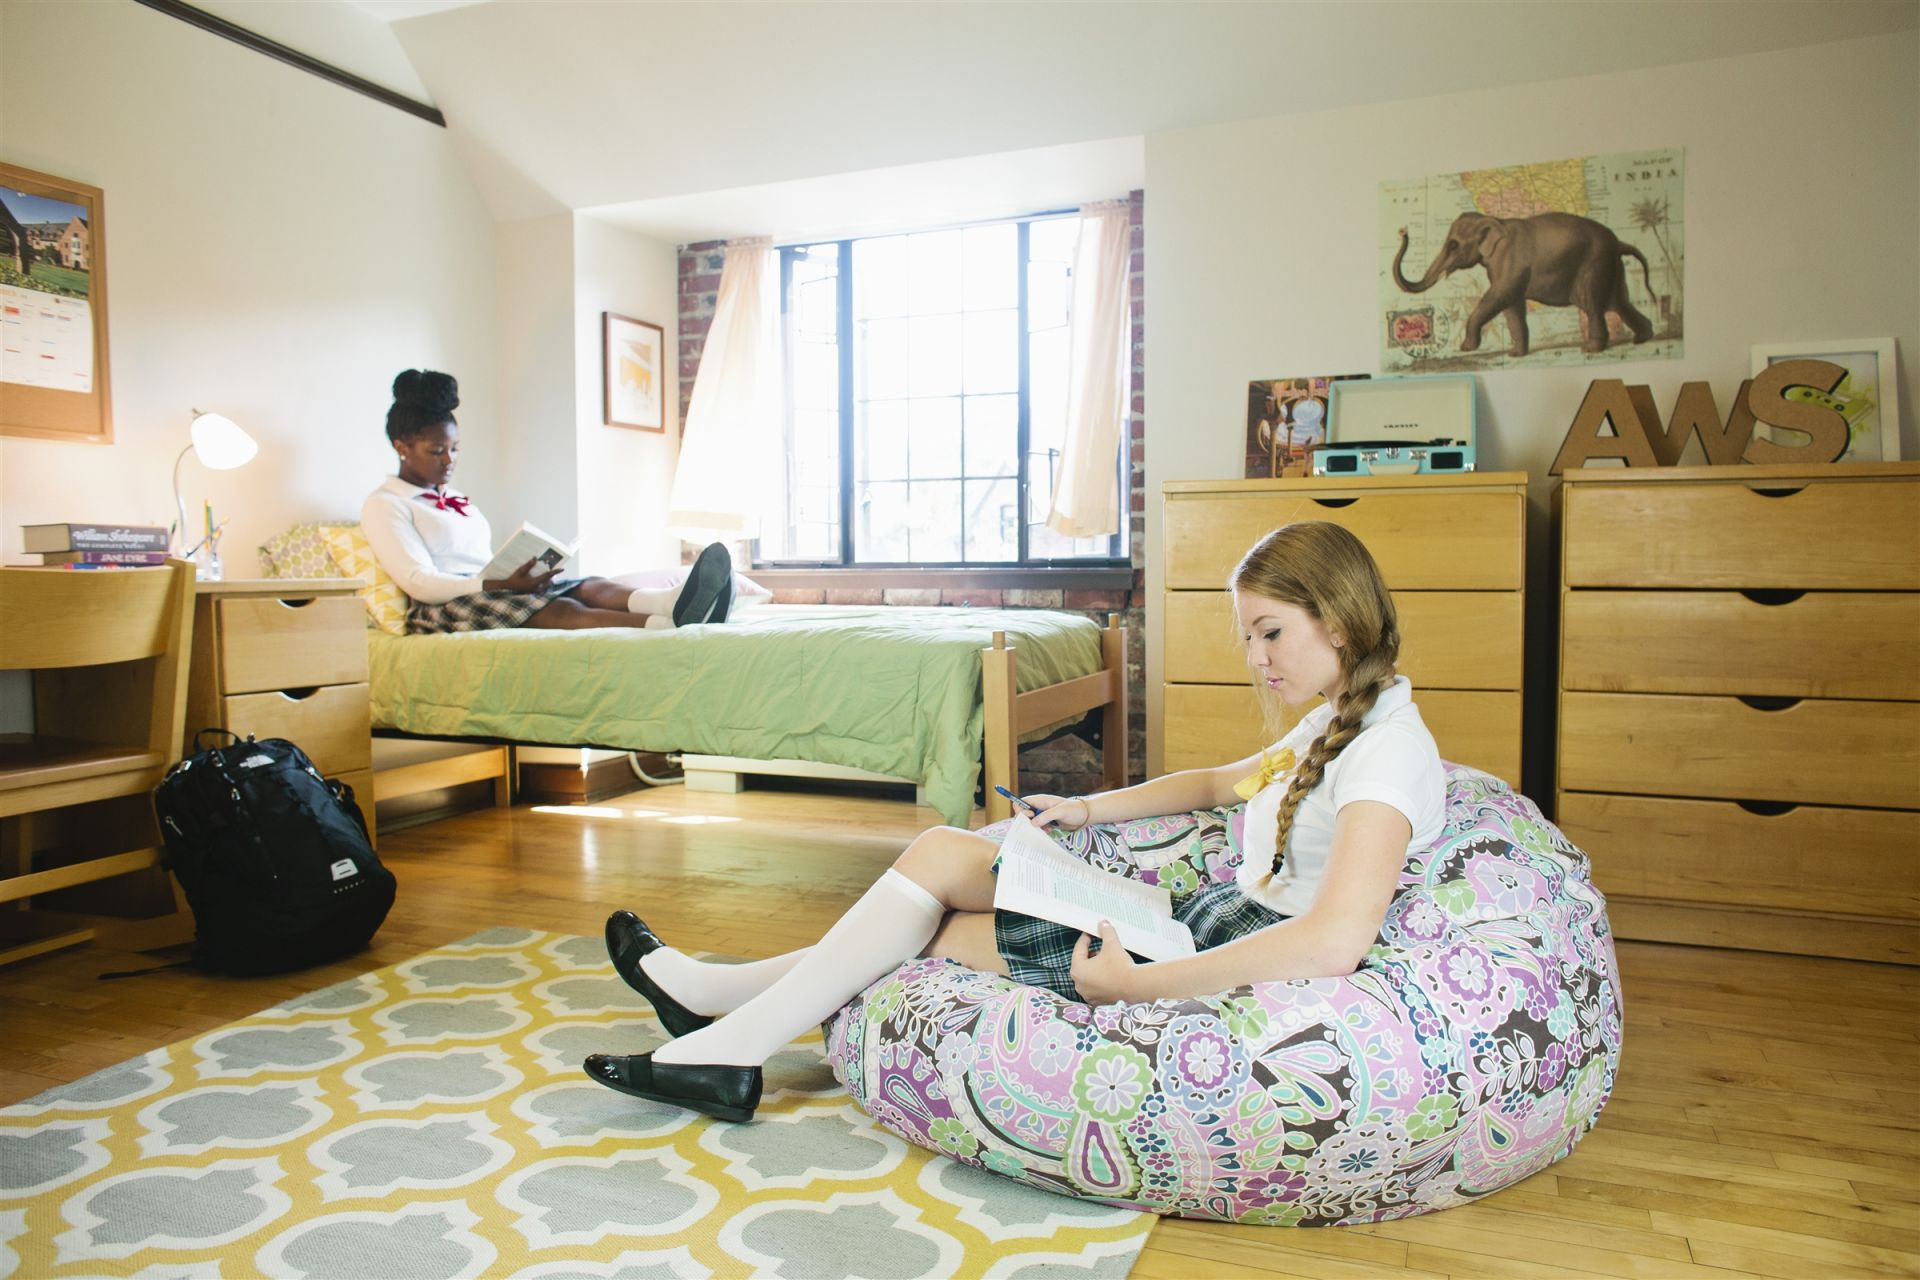 The recently refurbished dorm rooms are spacious, bright and airy.